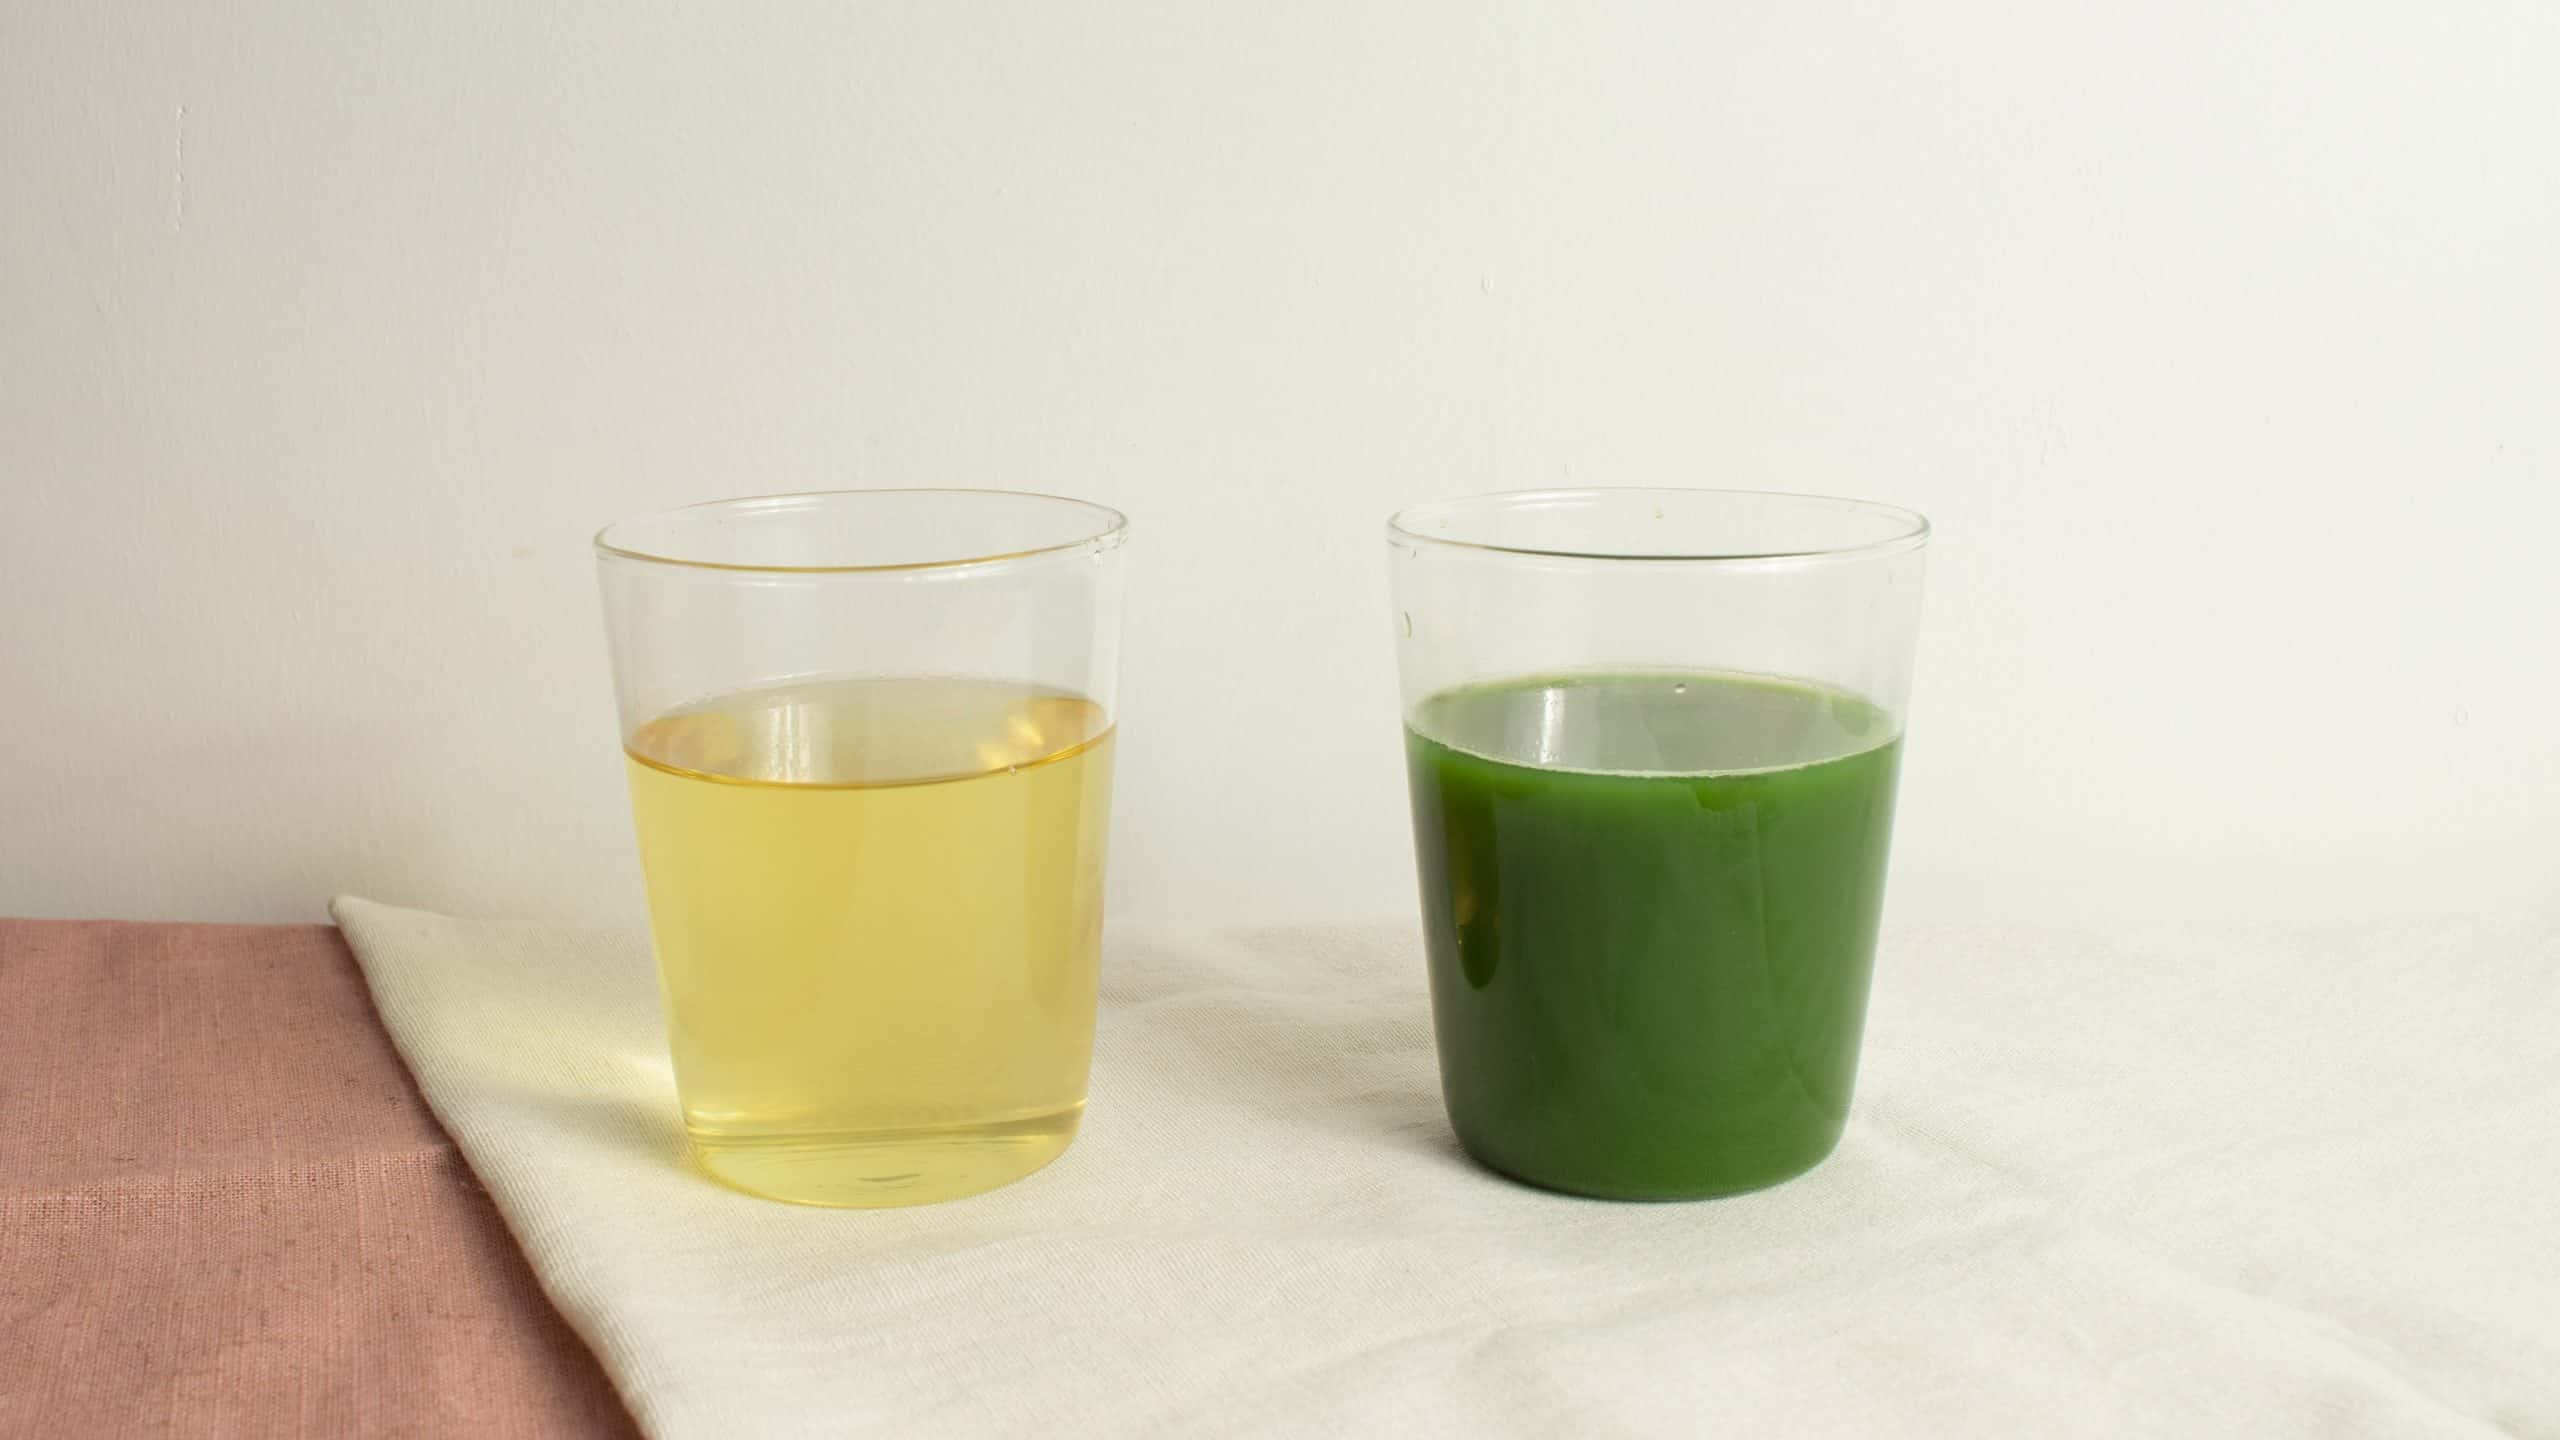 sencha green tea and matcha comparison